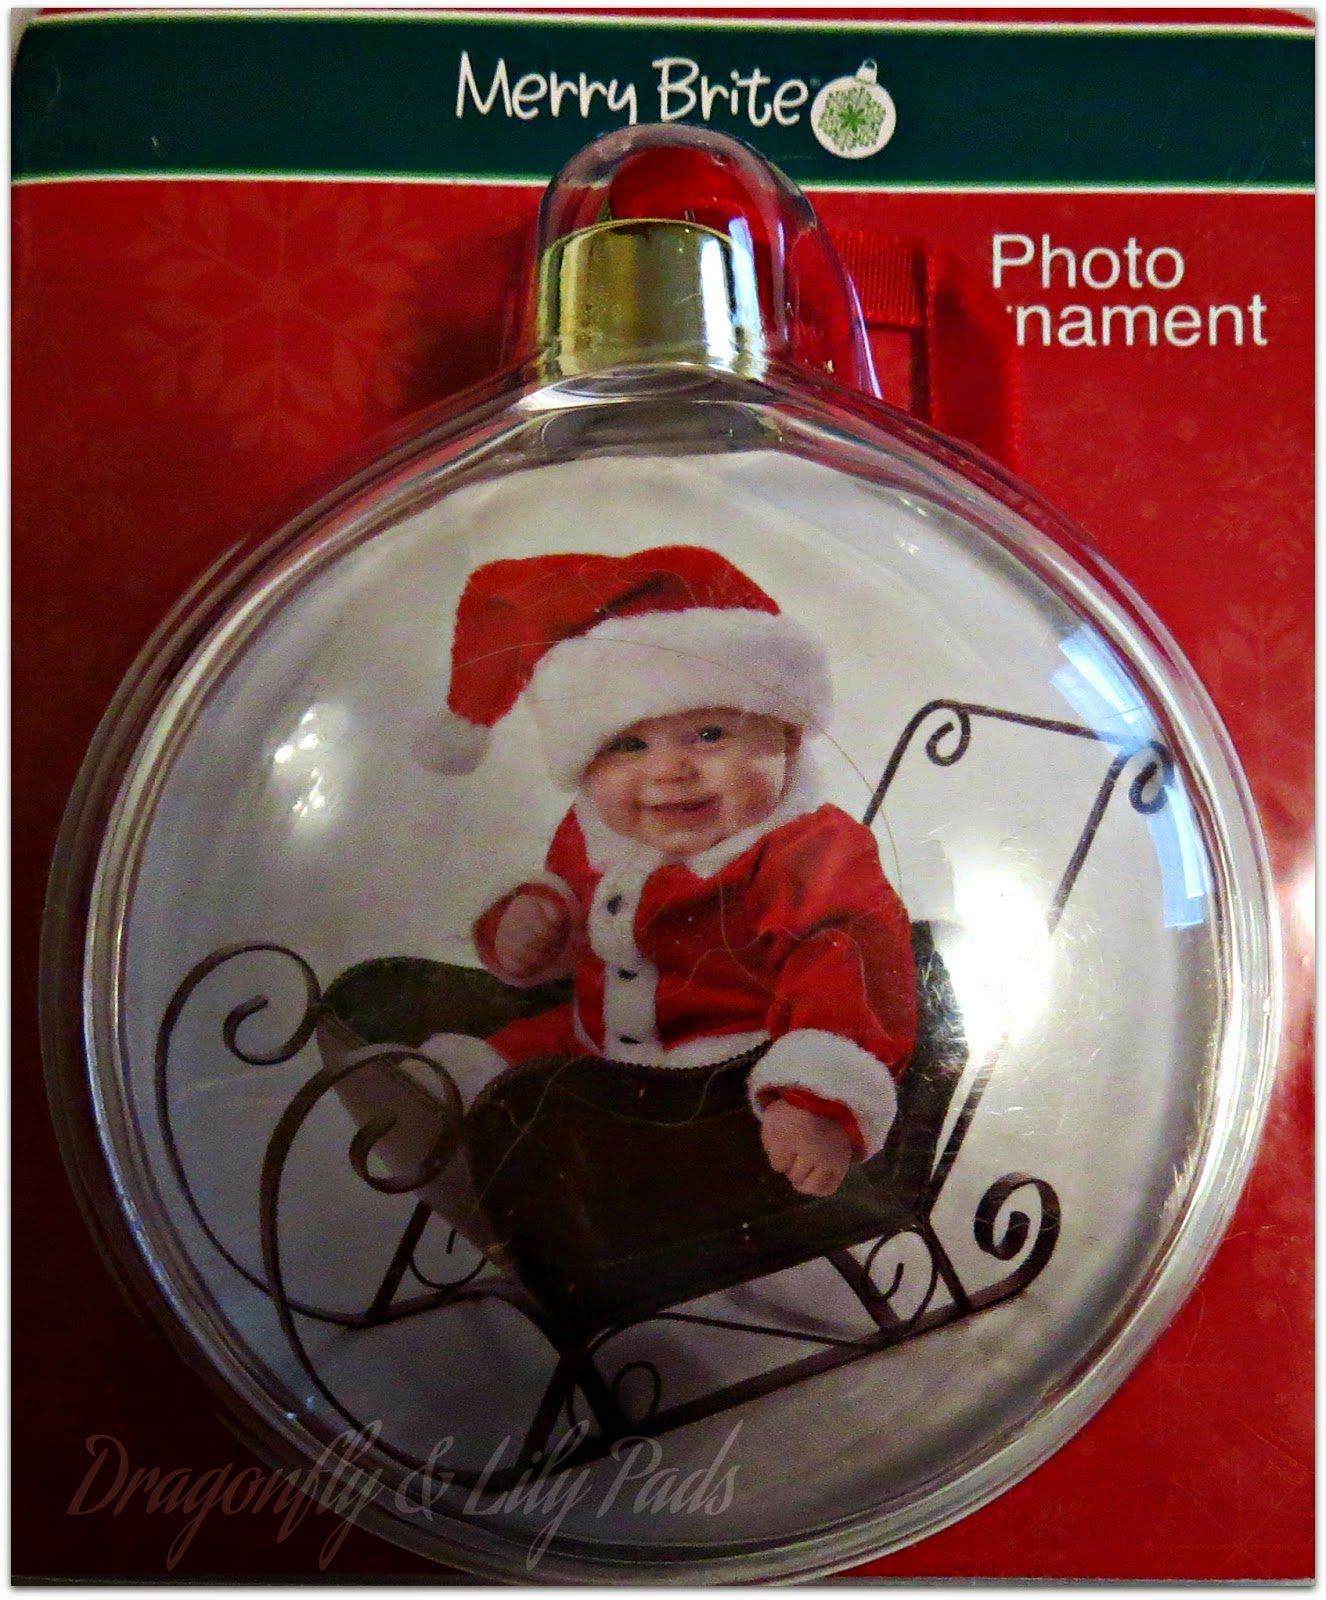 Merry Brite Photo Ornament, D&LP Designs, Elf Gift Exchange bonds Bloggers